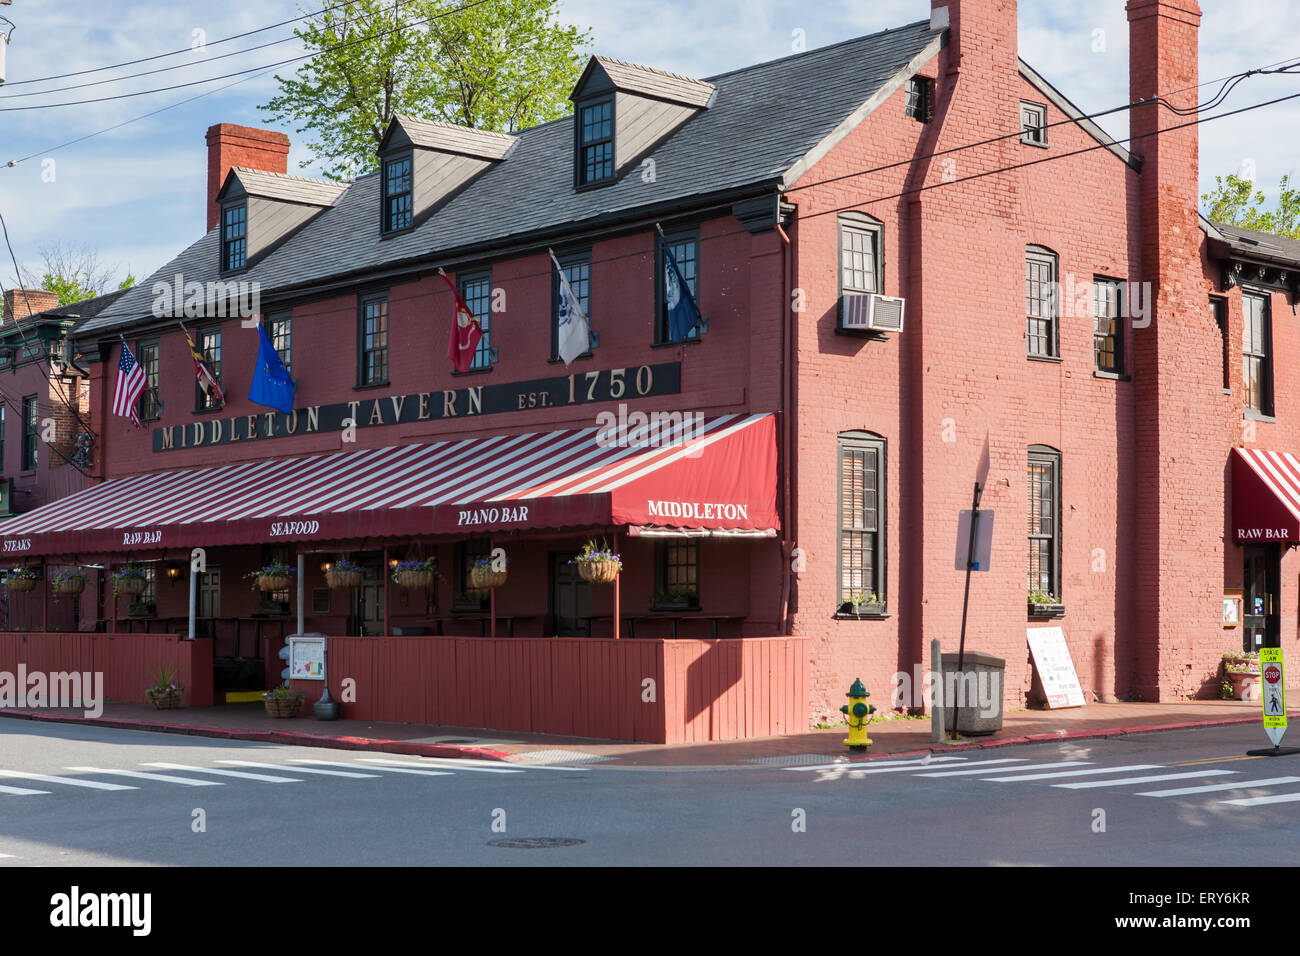 The historic Middleton Tavern in Annapolis, Maryland. - Stock Image